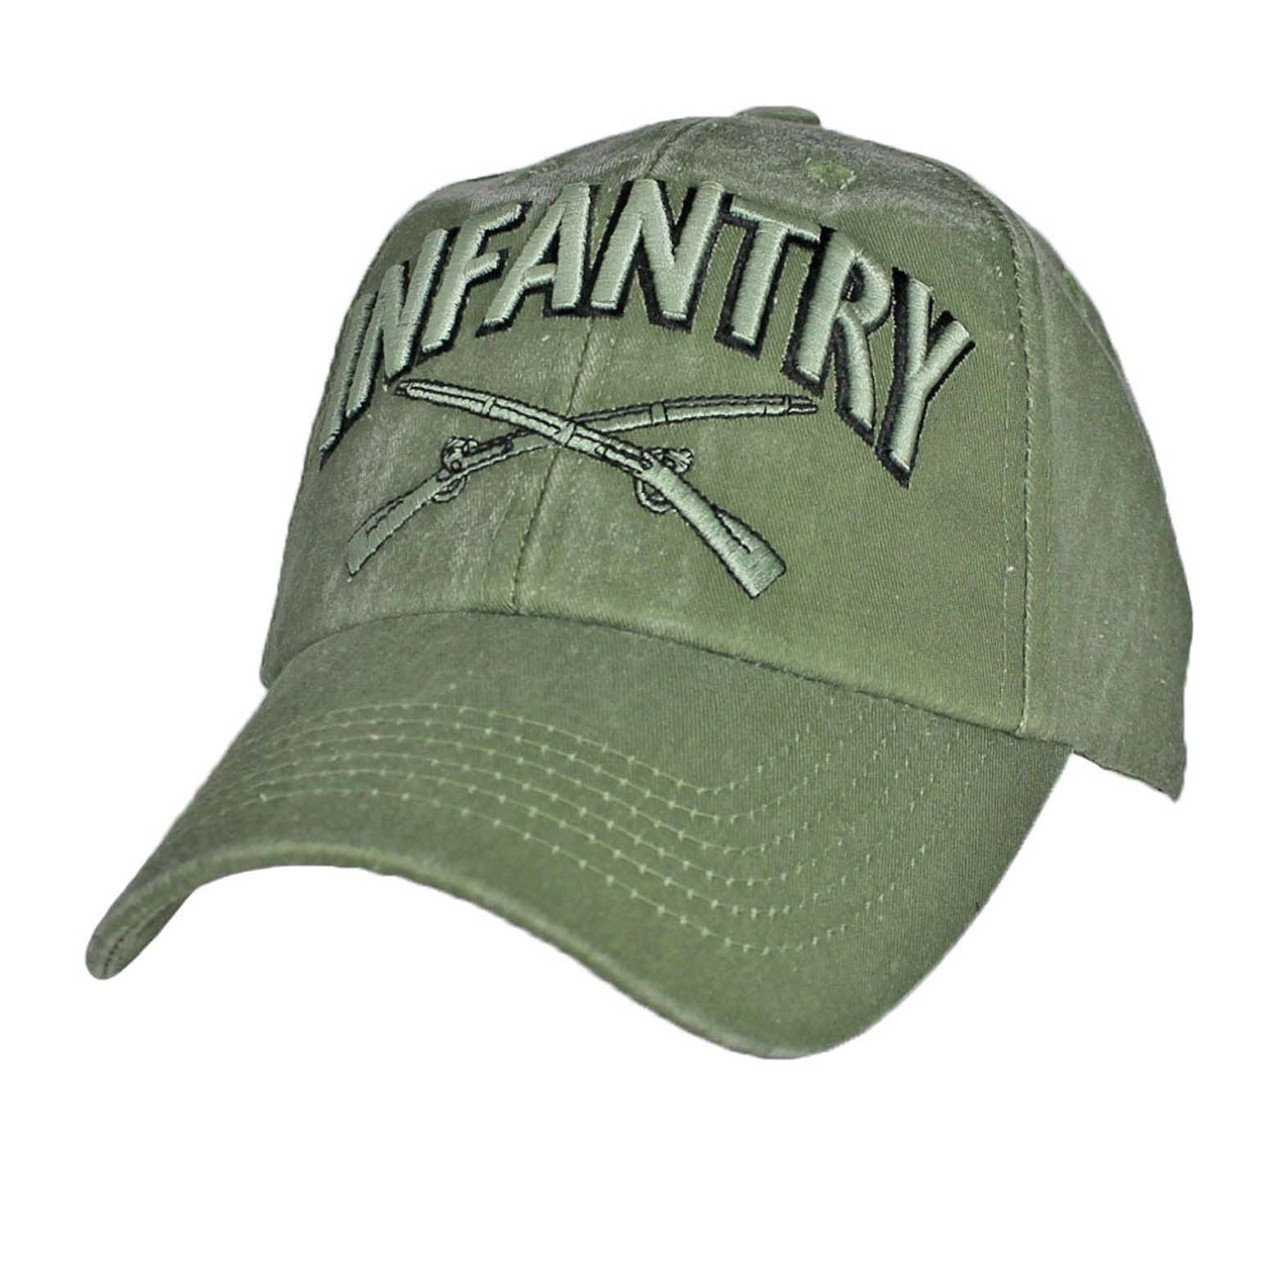 Army Military Black Baseball Cap Hat US ARMY 4th INFANTRY U.S